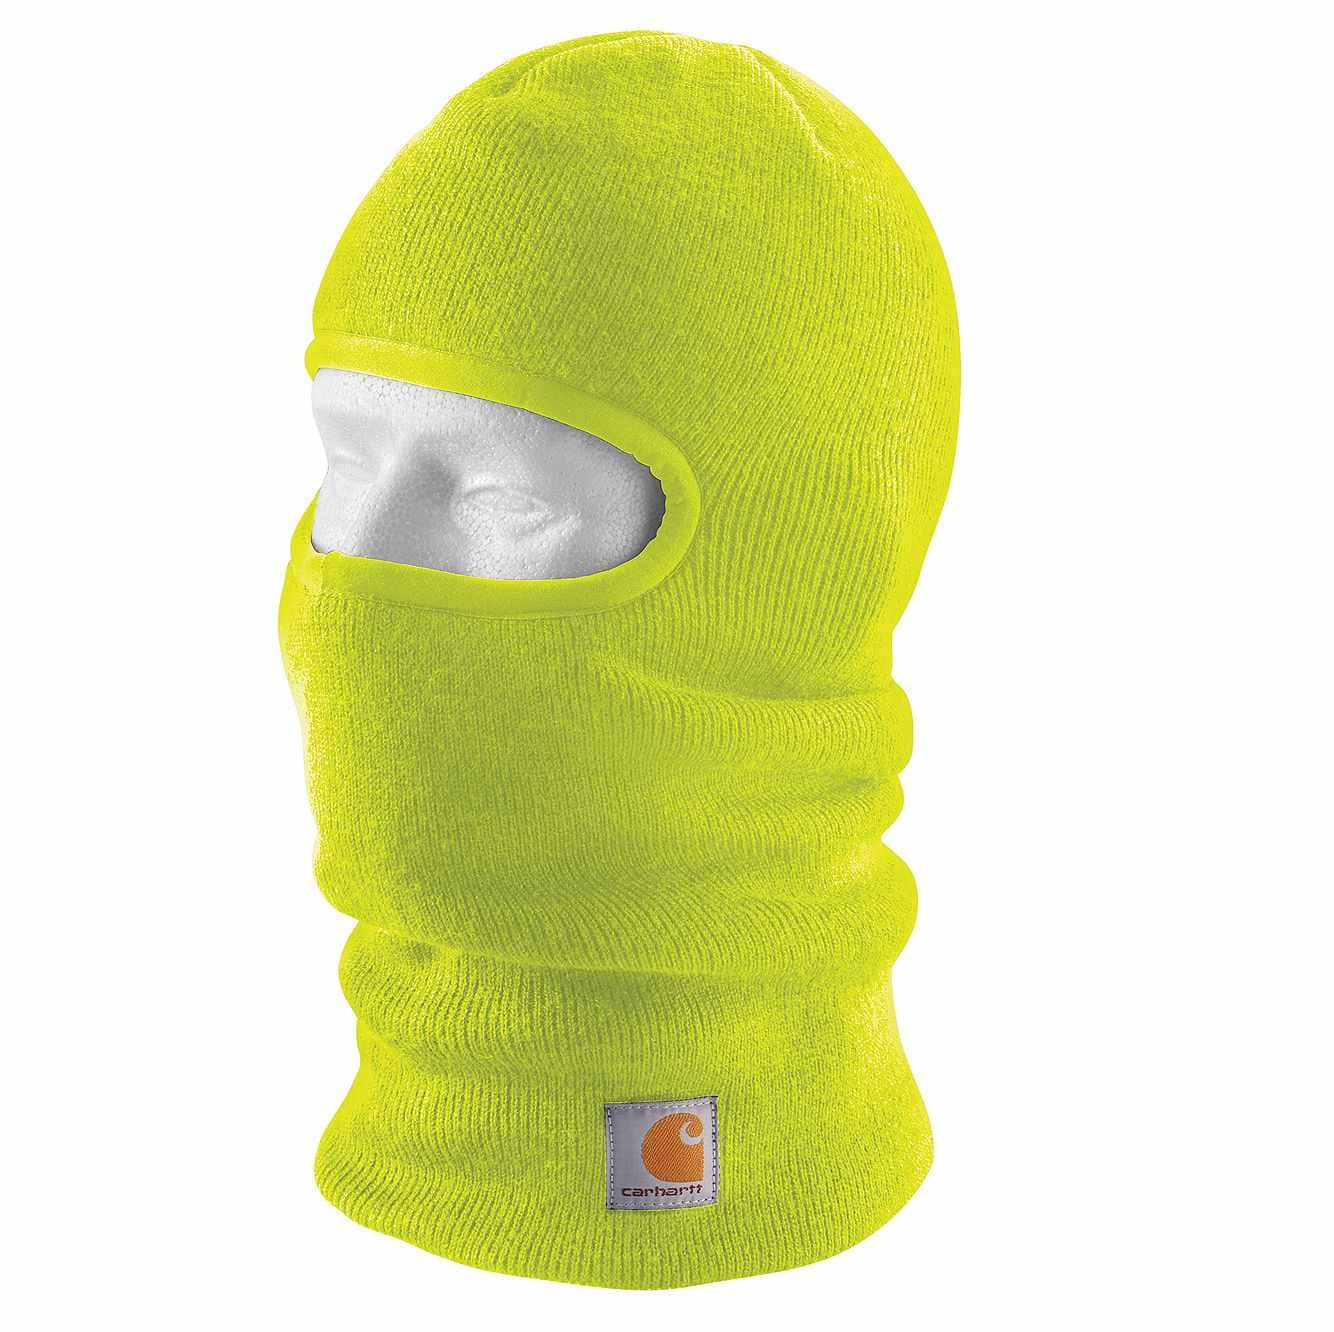 Picture of Carhartt® Knit Insulated Face Mask in Brite Lime